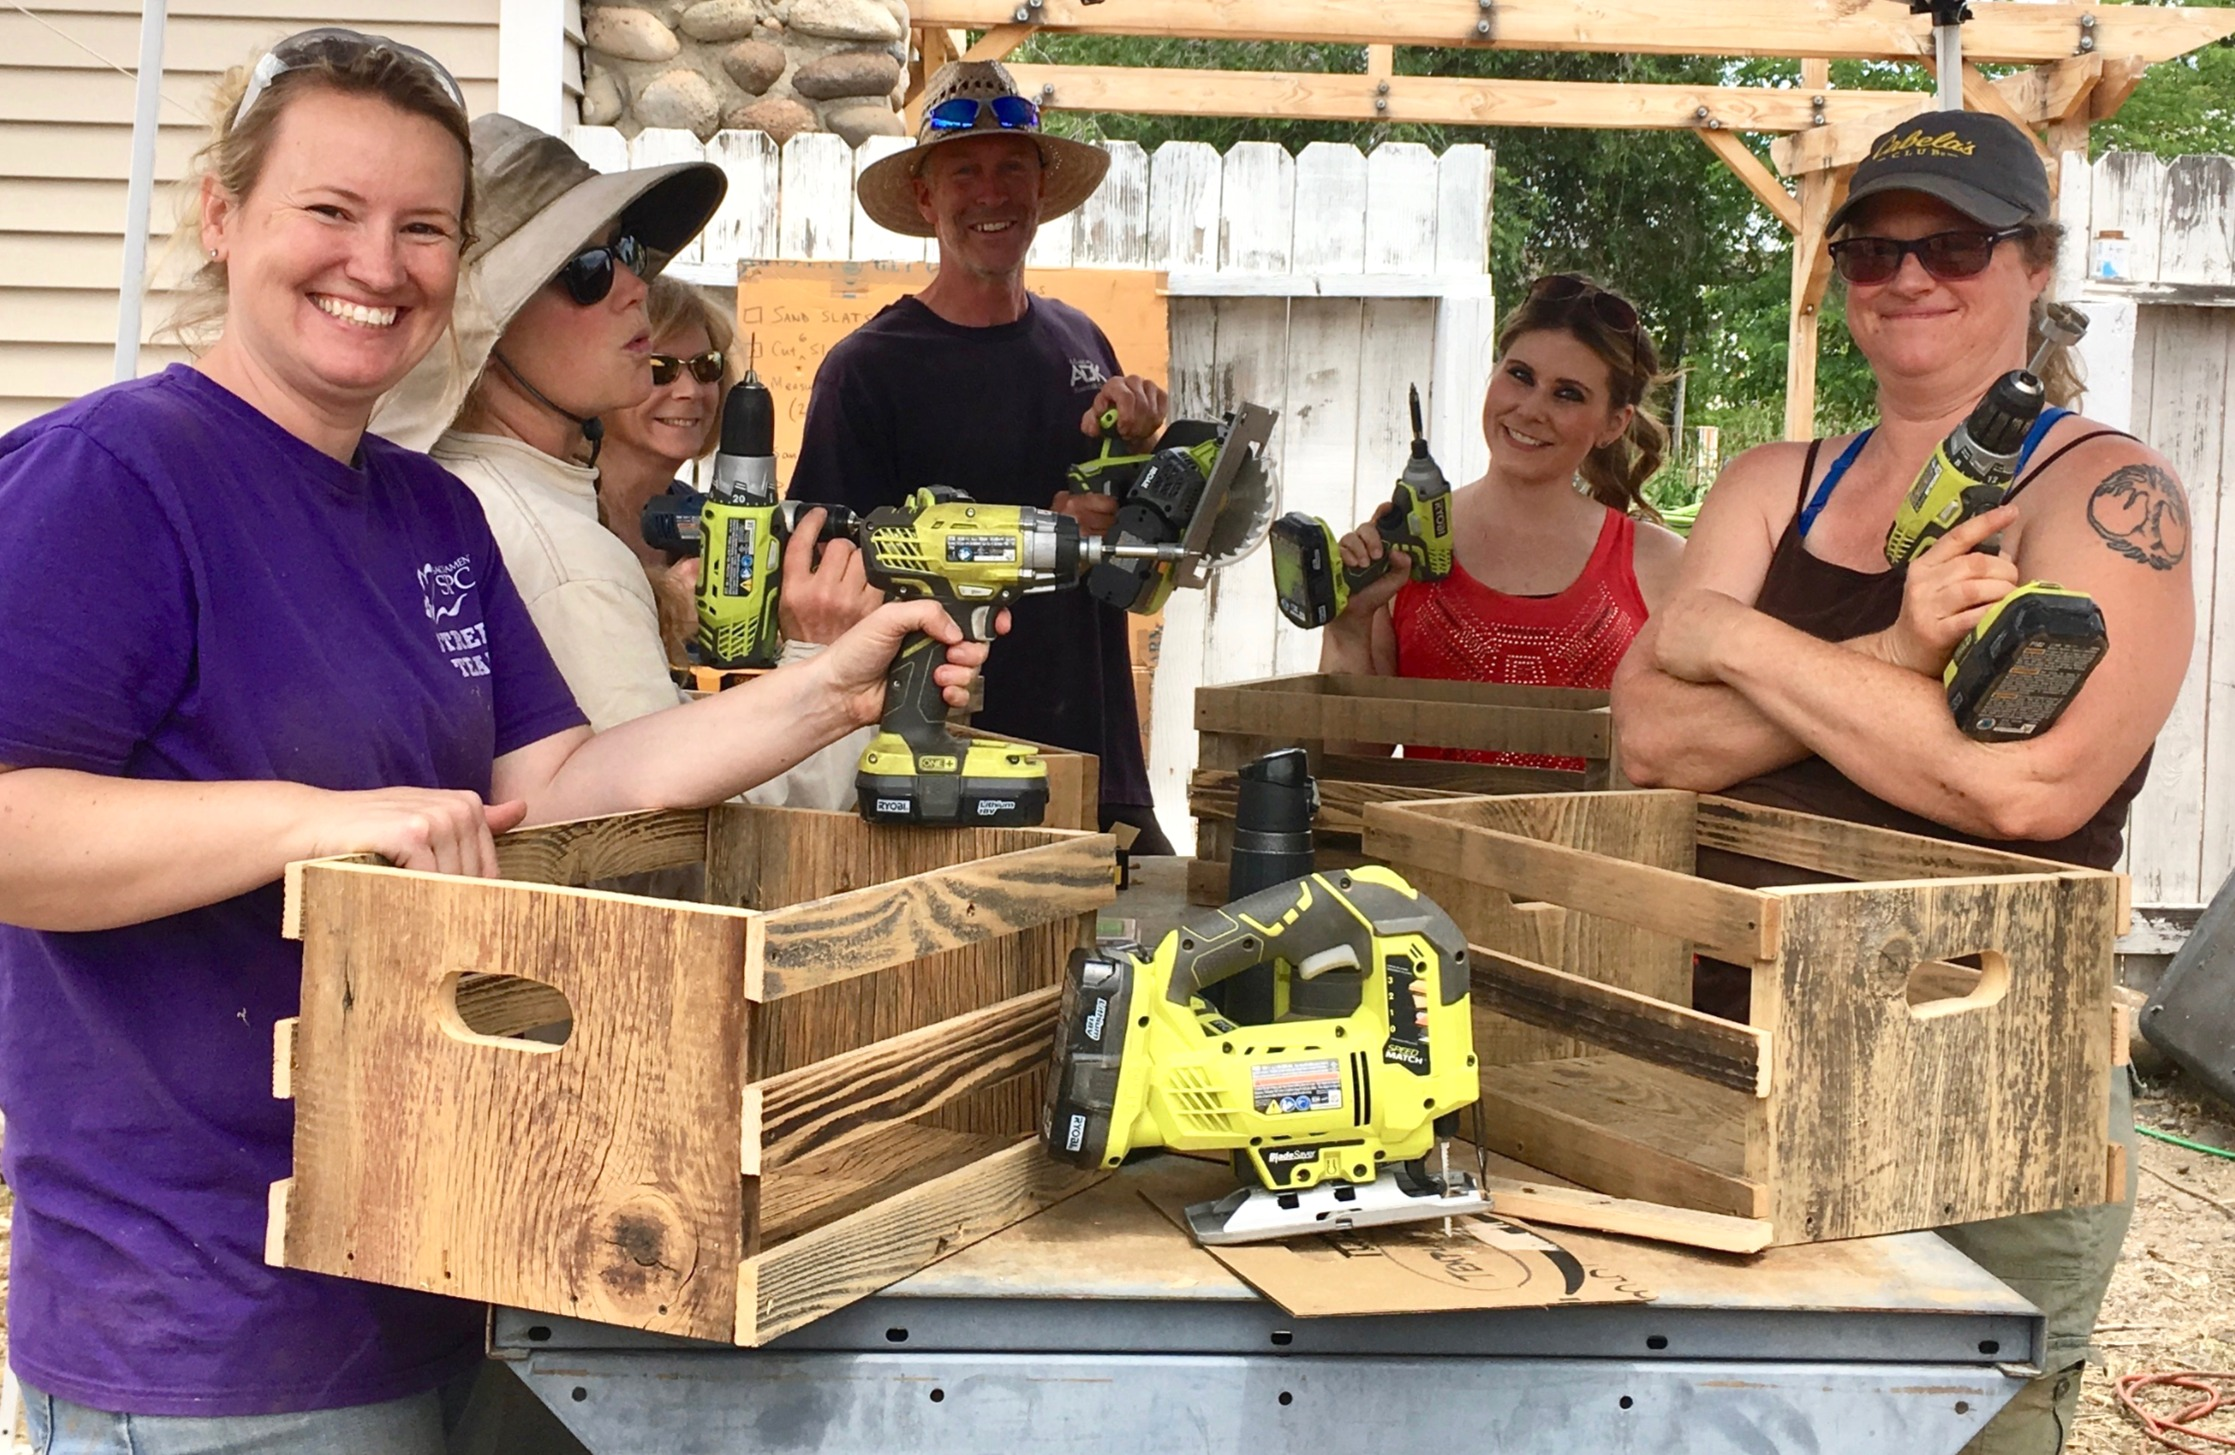 Power Tools to the People